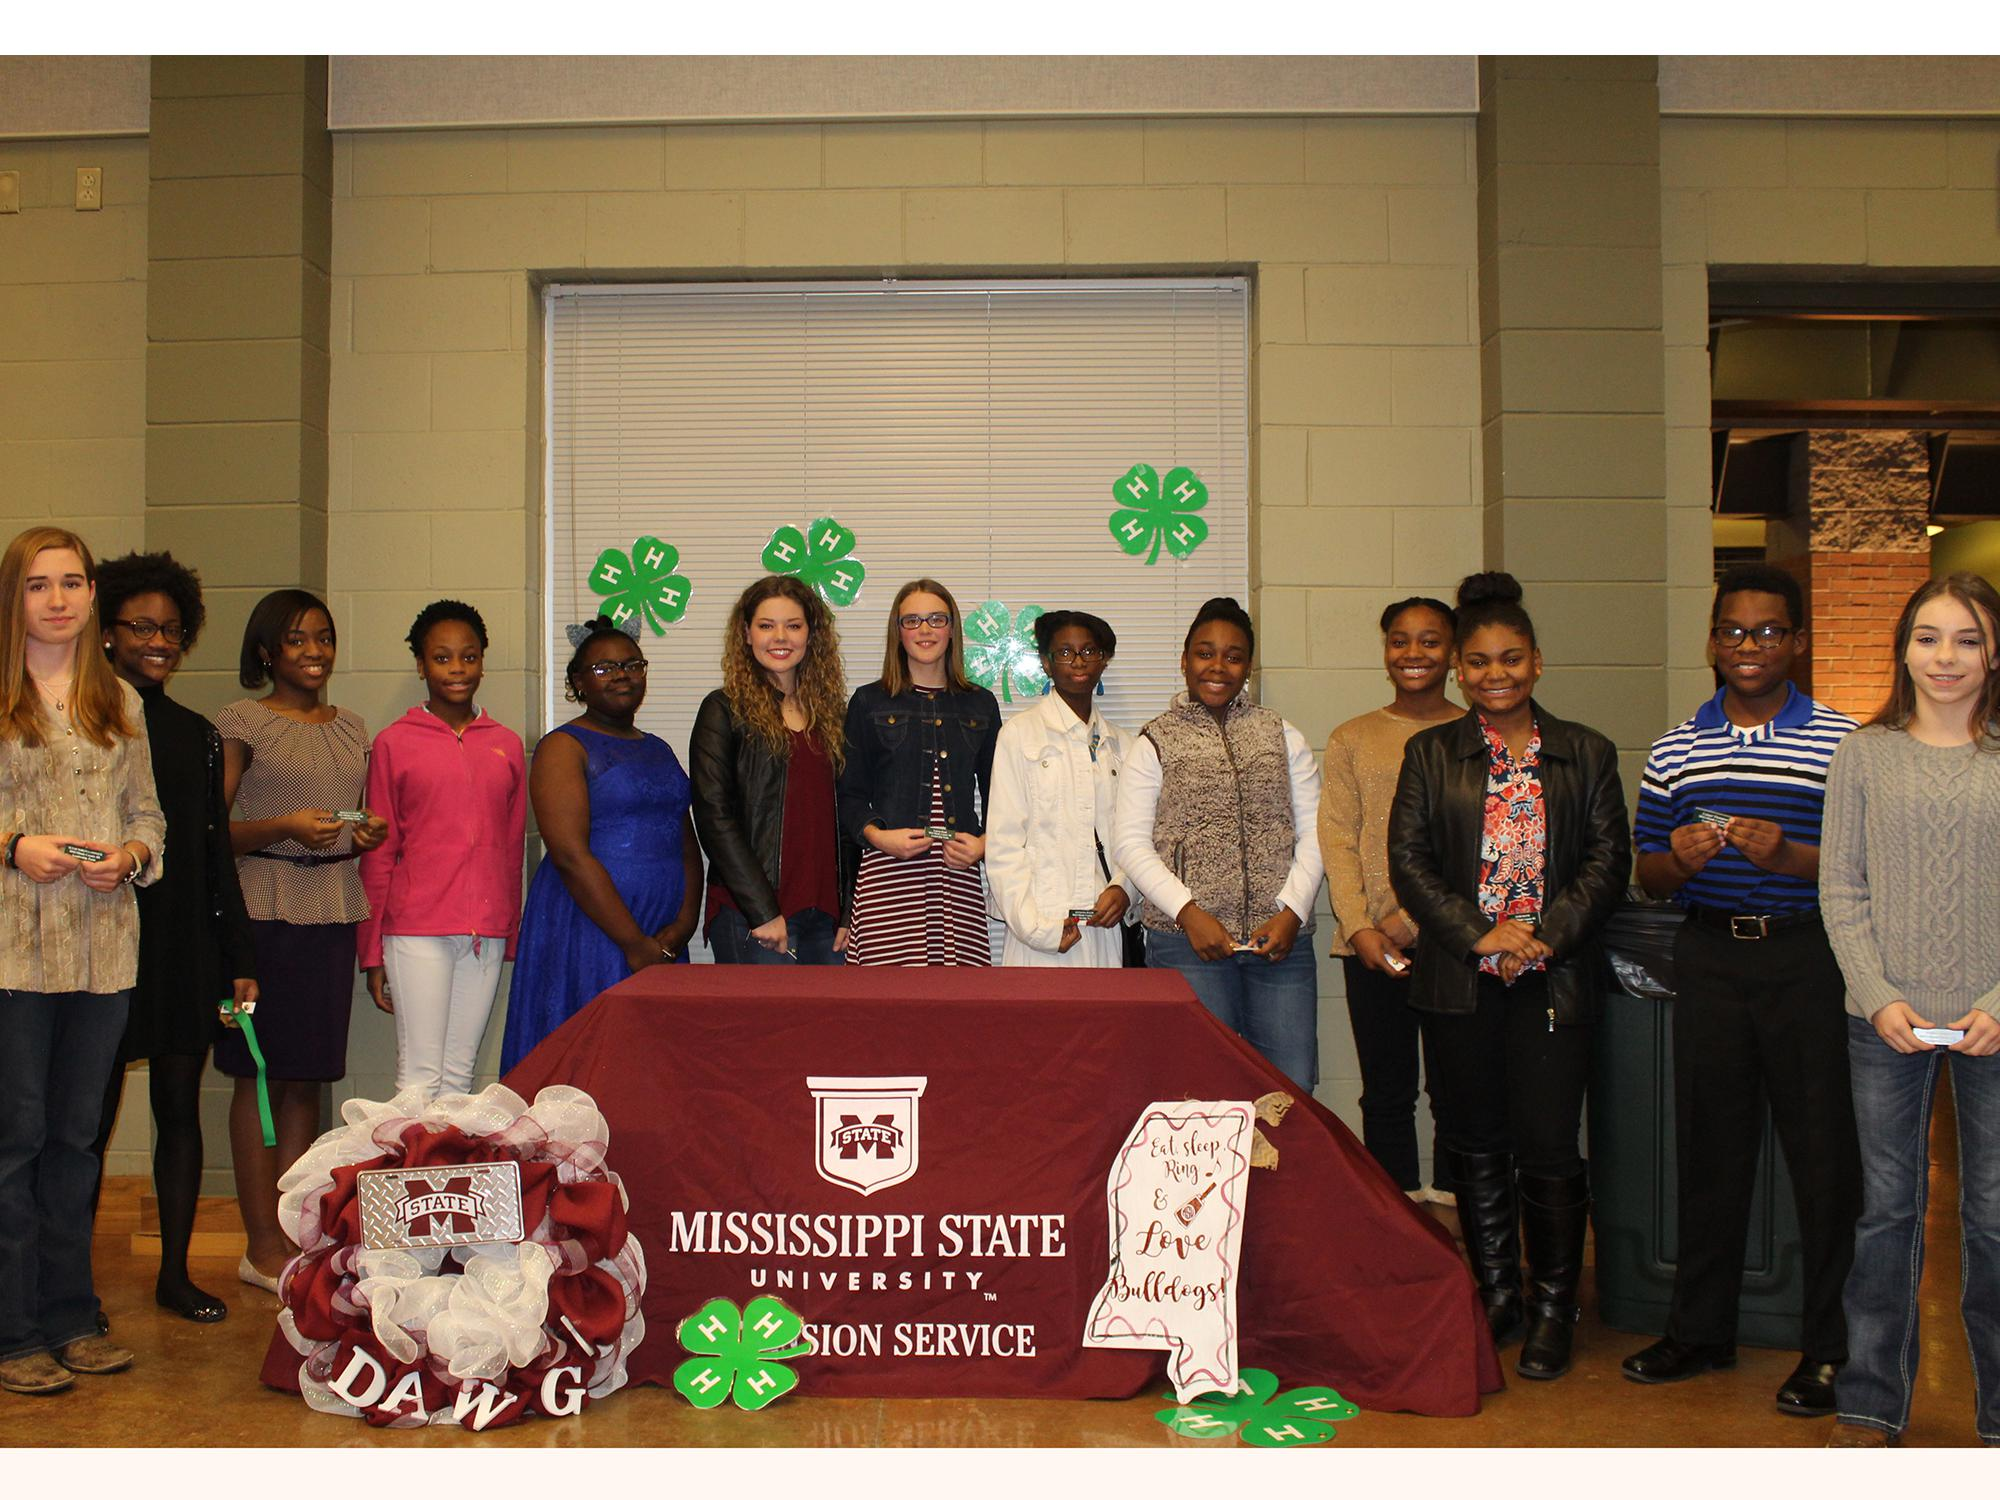 A group of teenagers pose for a photo celebrating their induction as 4-H Leadership team members.